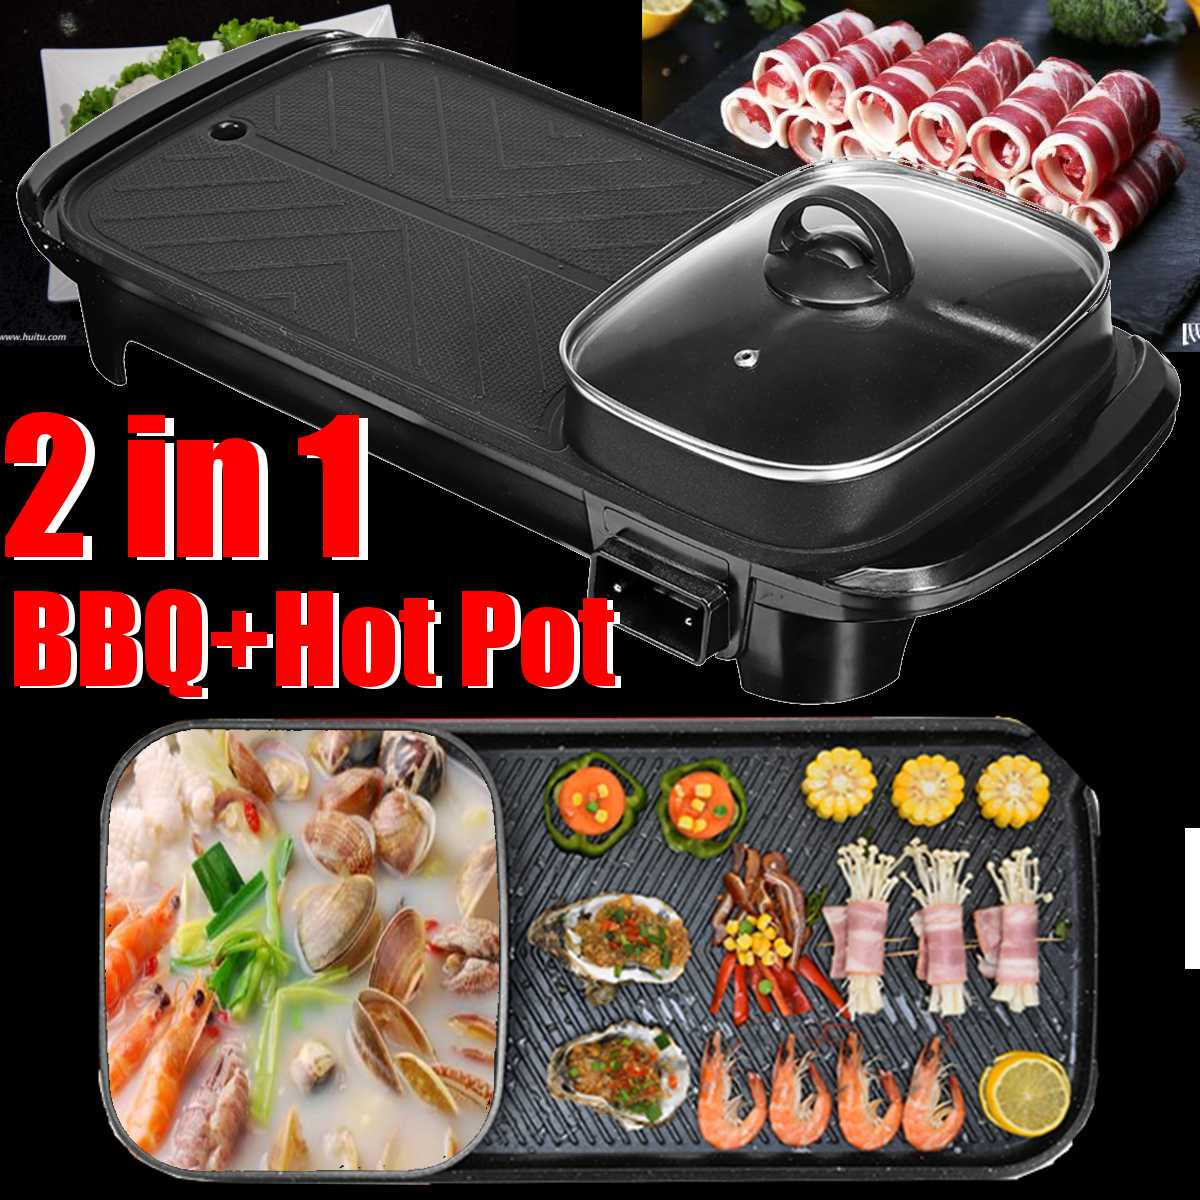 220V Electric BBQ Barbecue Plate Smokeless + Soup Pot Non Stick Multi-function Pan Hot Pot Home Cookware Electric Cook Machine